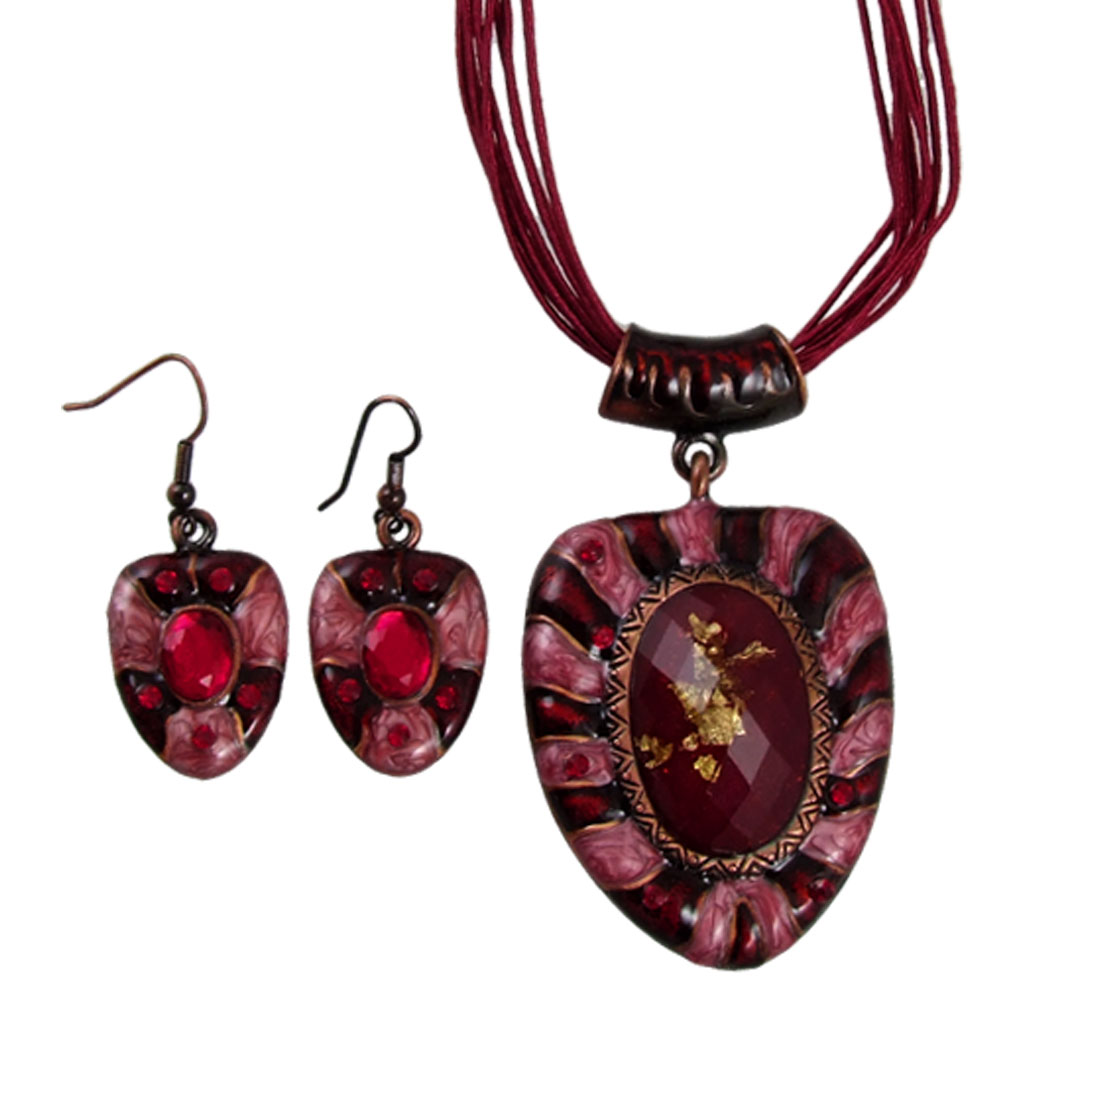 Red Bead Inlaid Shield Pendant Multi String Necklace Earrings Set